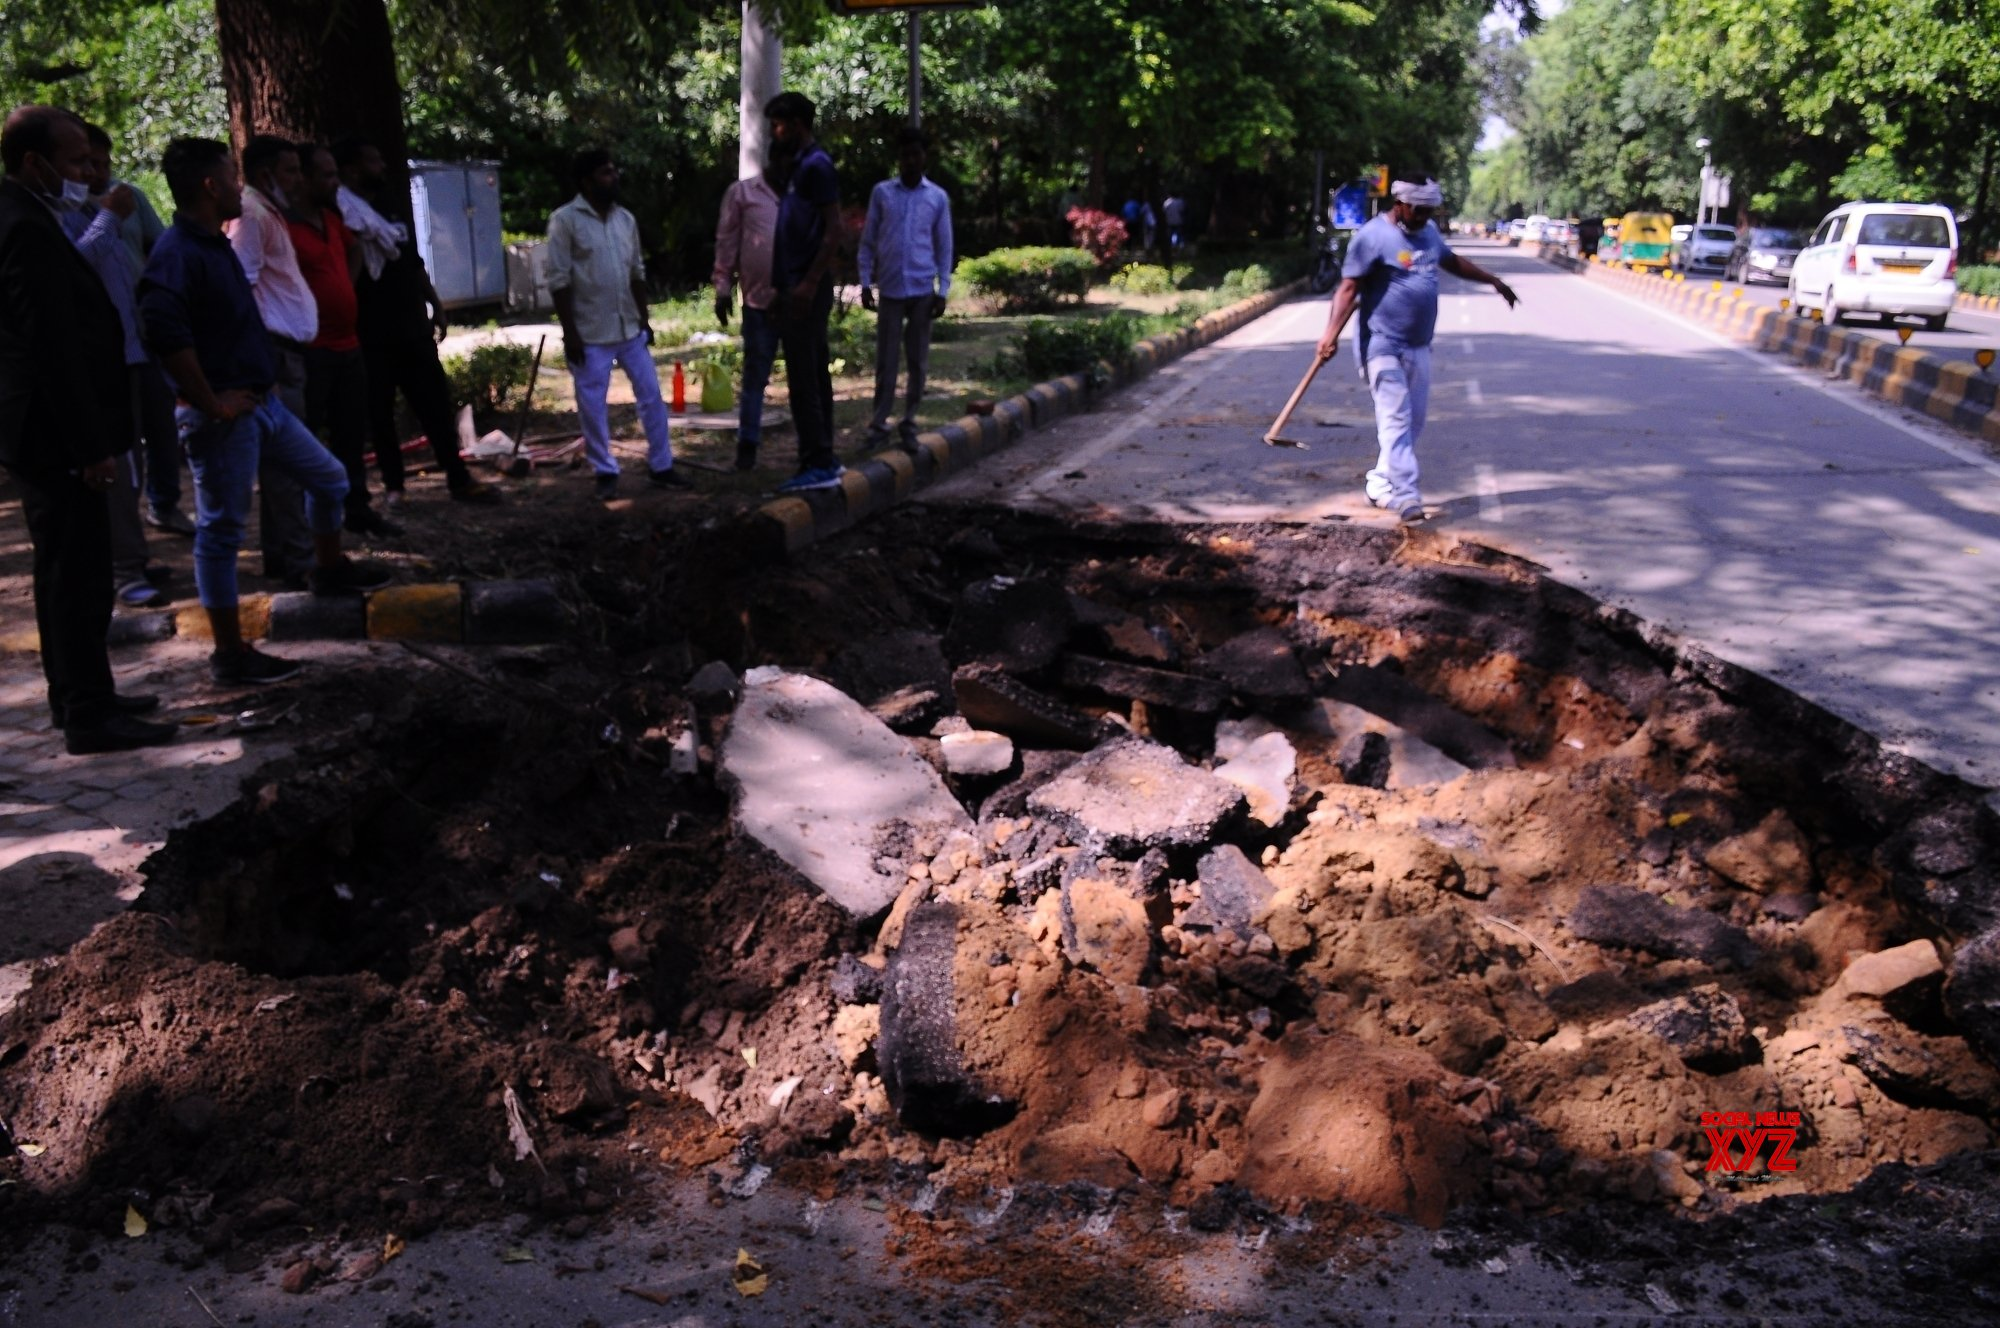 New Delhi: A portion of the road caved in at Copernicus Marg in Delhi. #Gallery